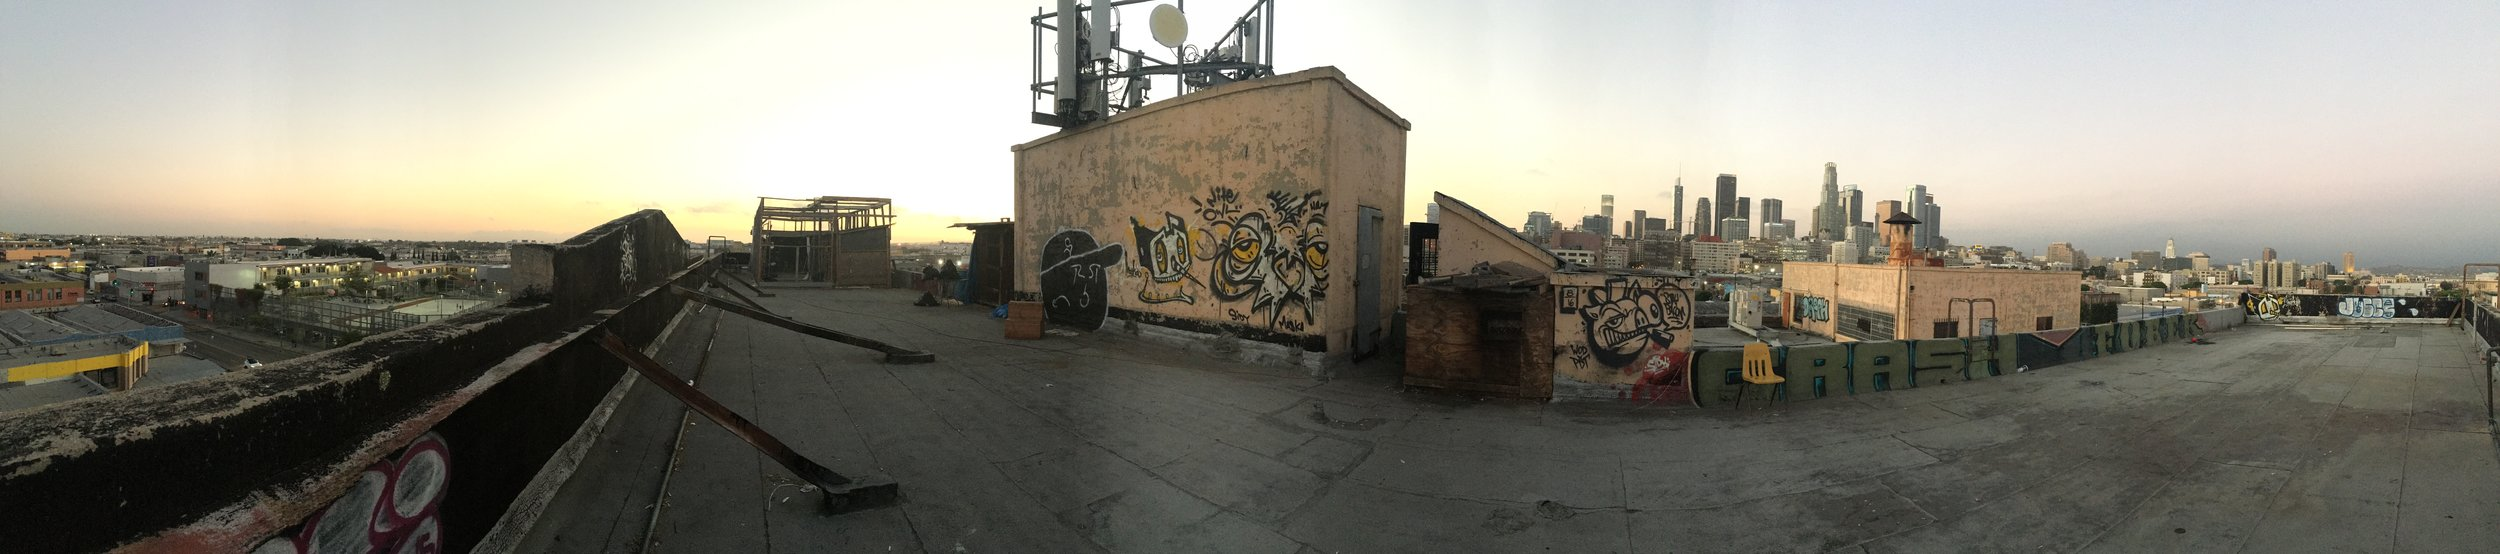 Roof top panorama. Nice view over down town. Note the pigeon cages to the left on the roof. Someone is raising pigeons here. For meat? Post?